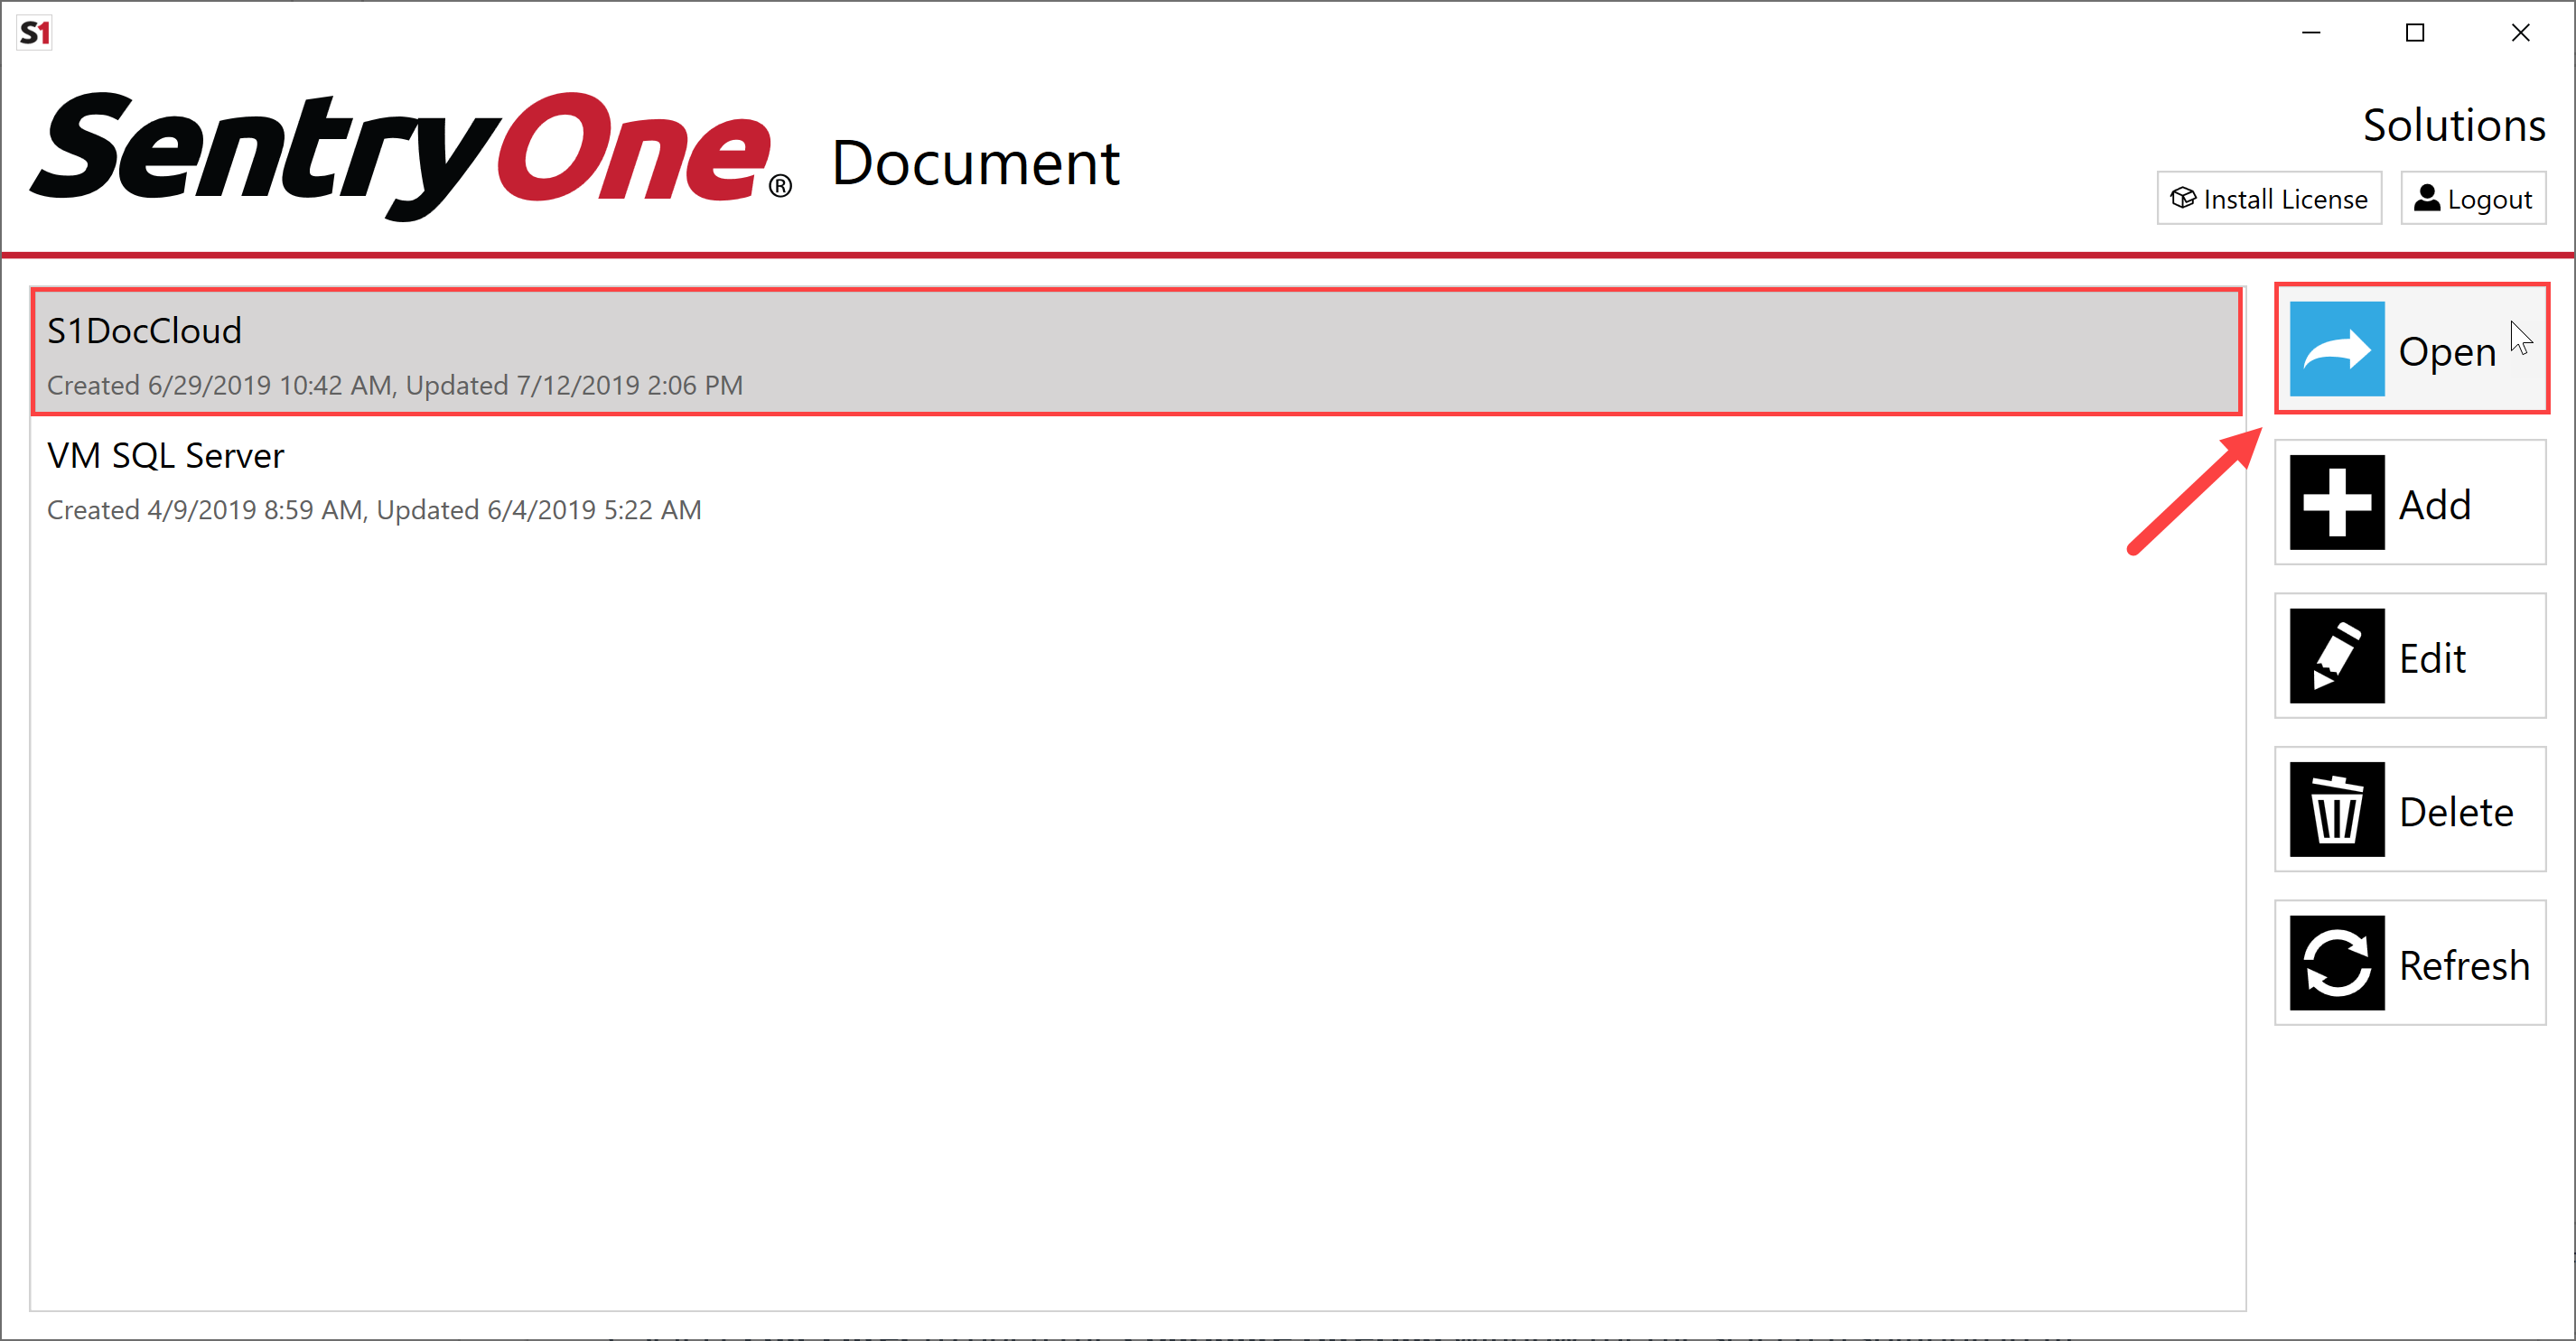 SentryOne Document SentryOne Document Open Solution